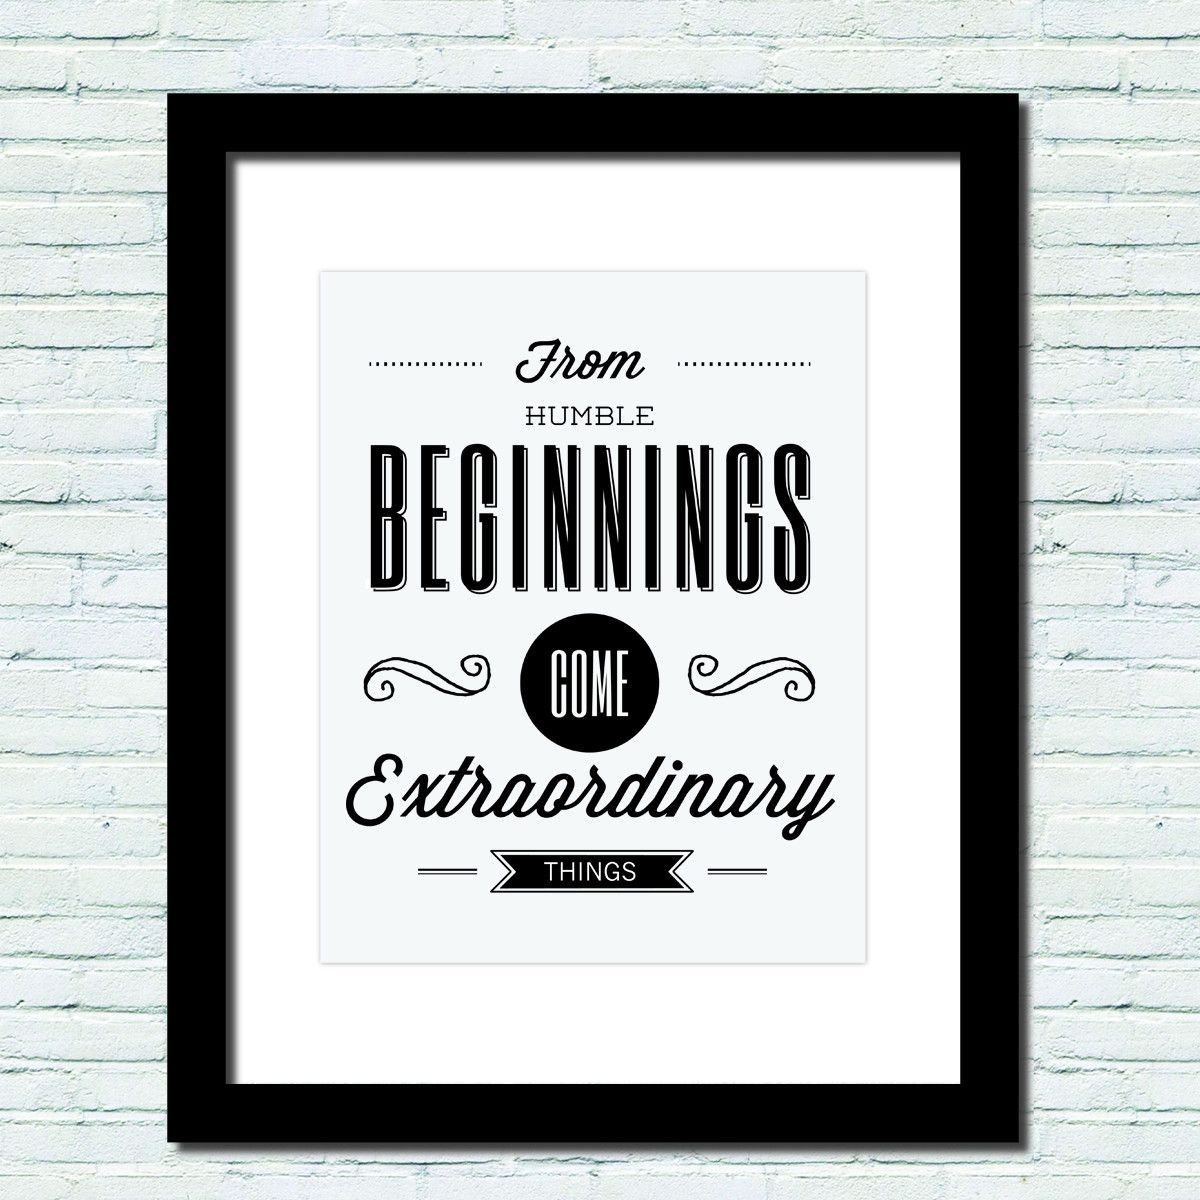 Humble Beginnings Quotes: 'Humble Beginnings' Motivational Poster